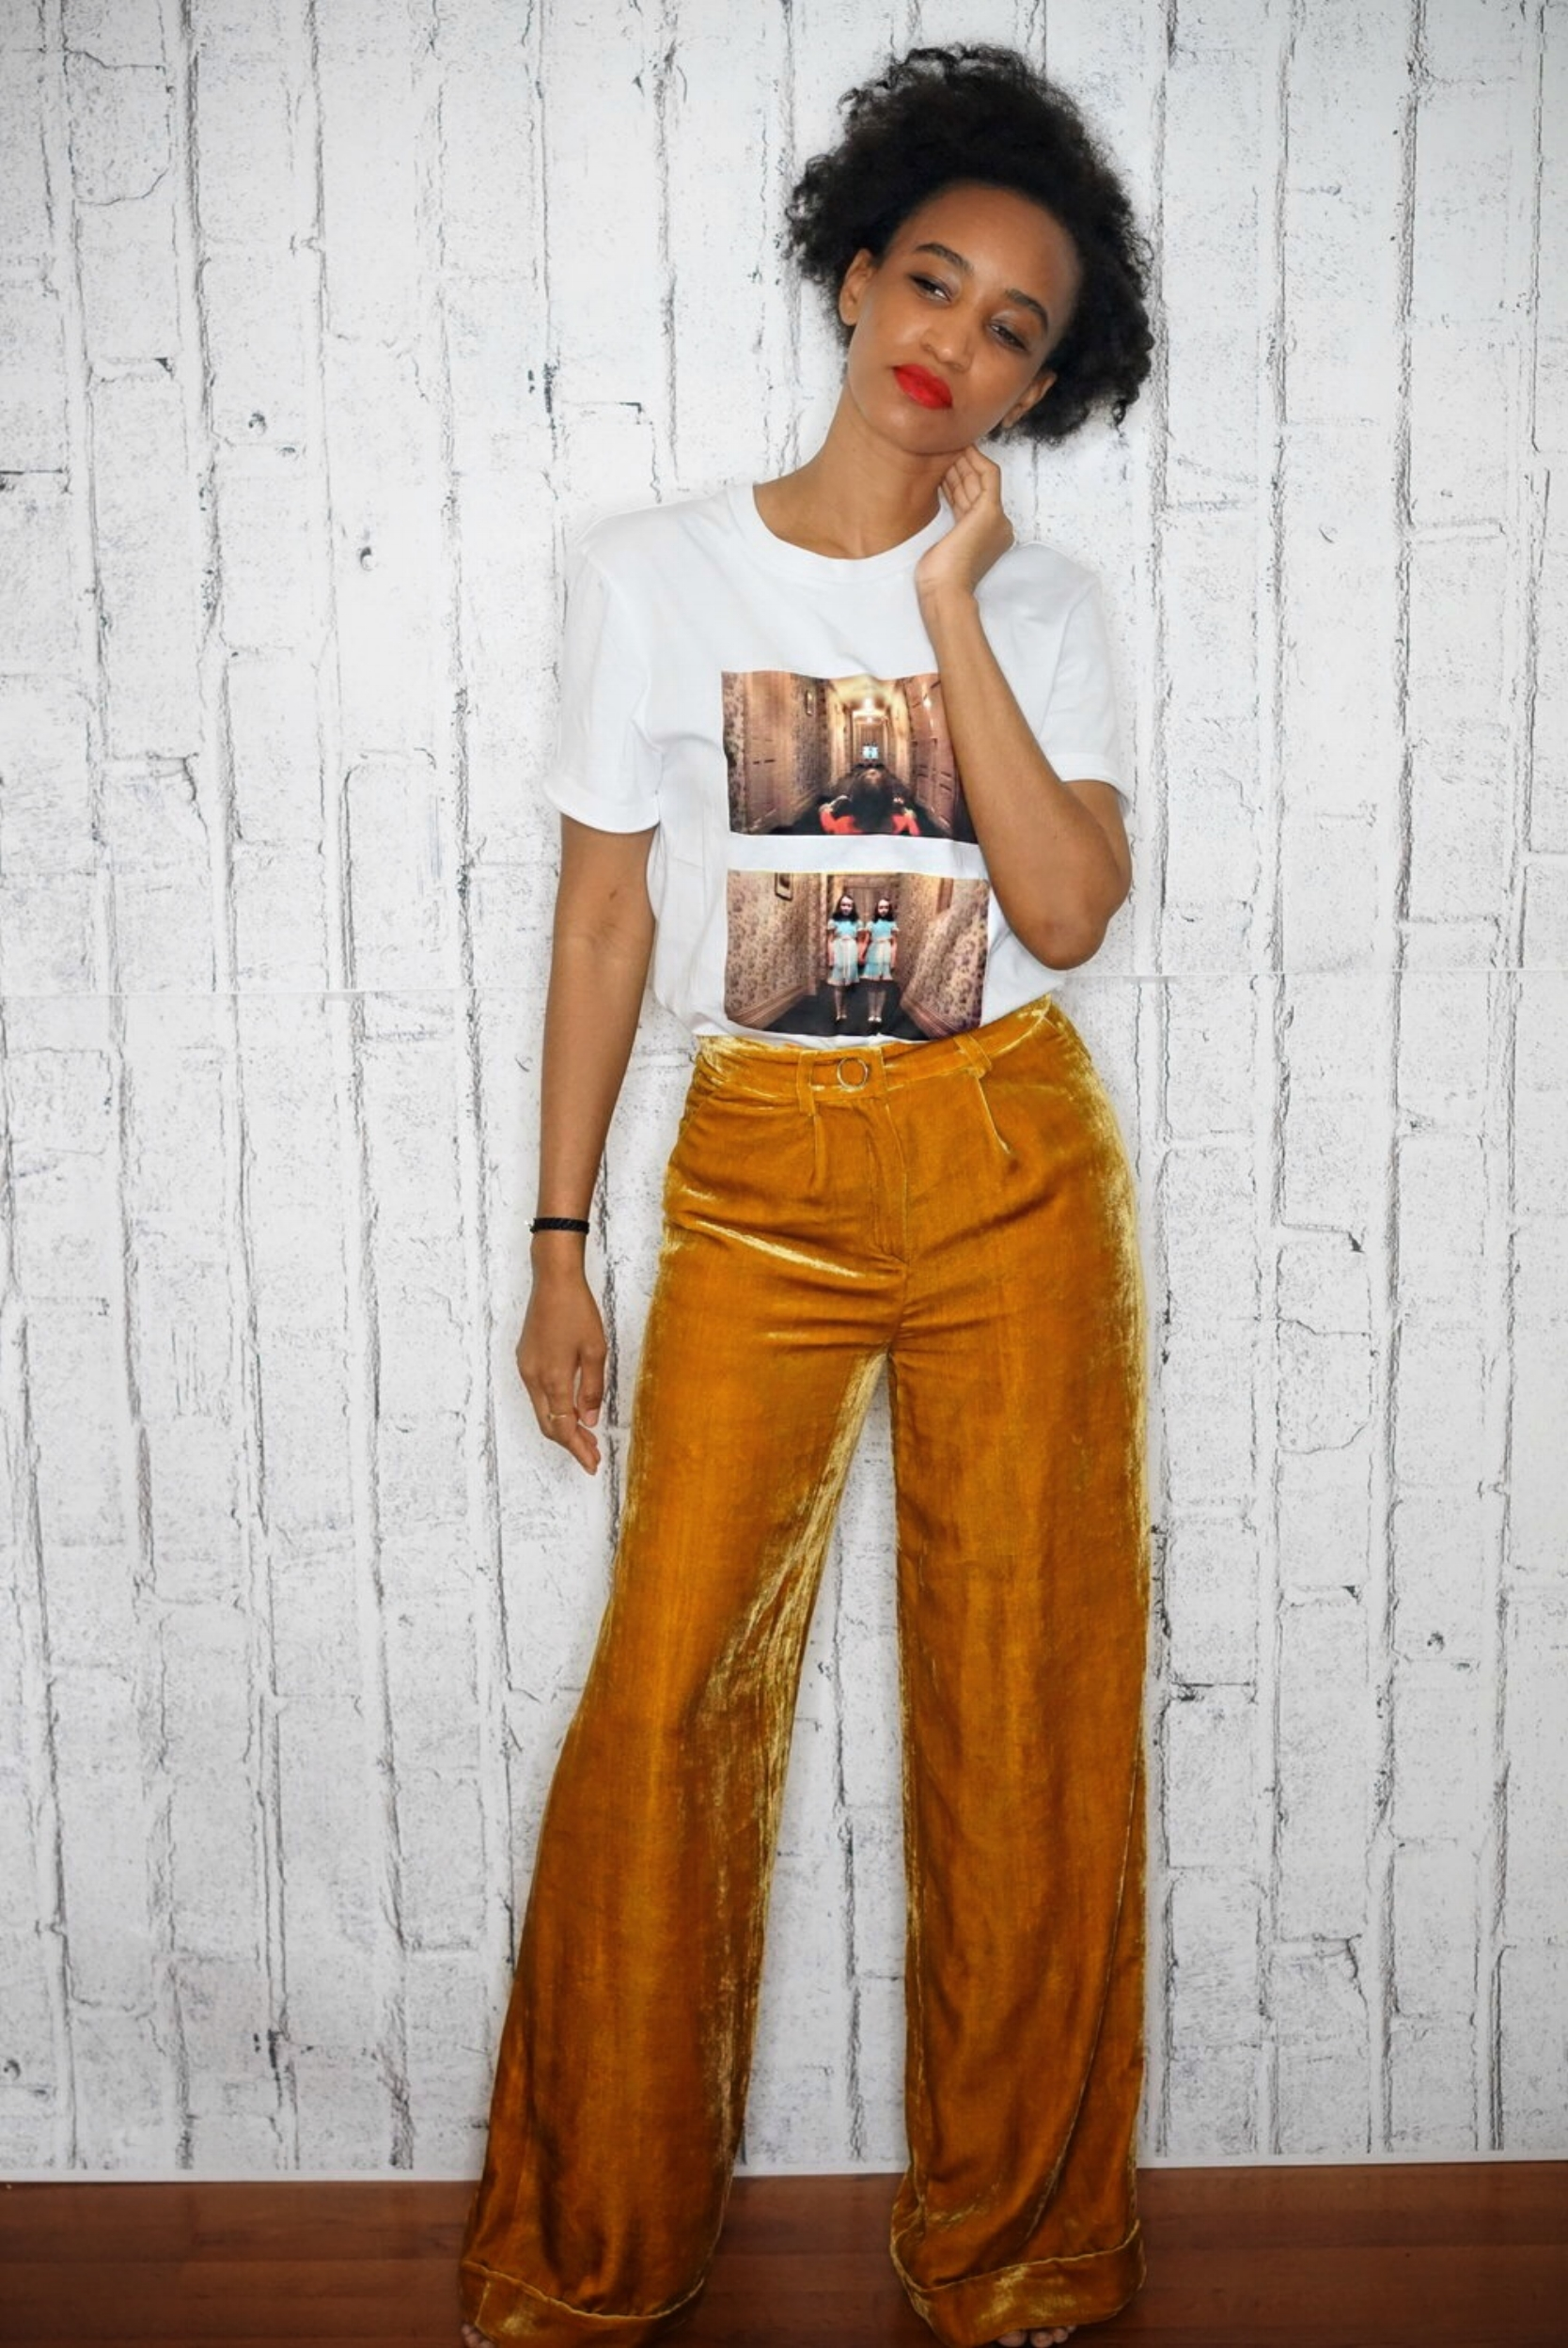 christine_the_style_affaire_thierry_mugler_wide_velvet_pants_steve_madden_ suede_heela_fenty_beauty_stunna_lip_paint_jacuie_aiche_miansai_bracelet_fall.jpg